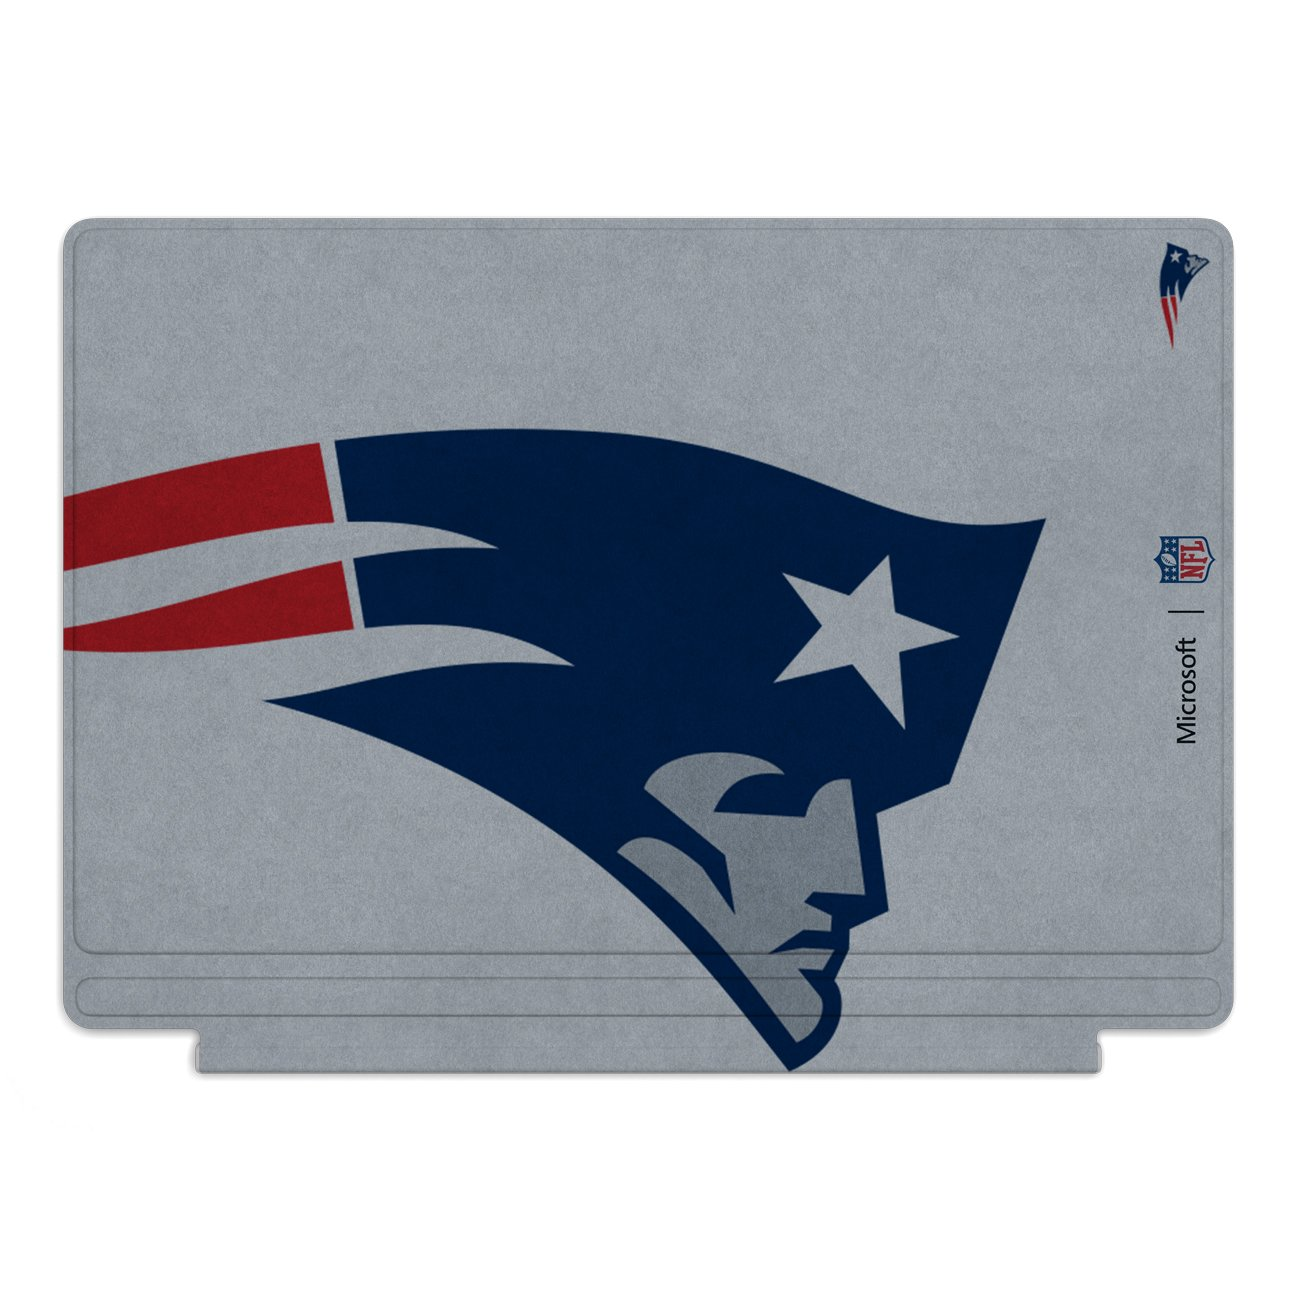 Microsoft Surface Pro 4 Special Edition NFL Type Cover (New England Patriots) by Microsoft